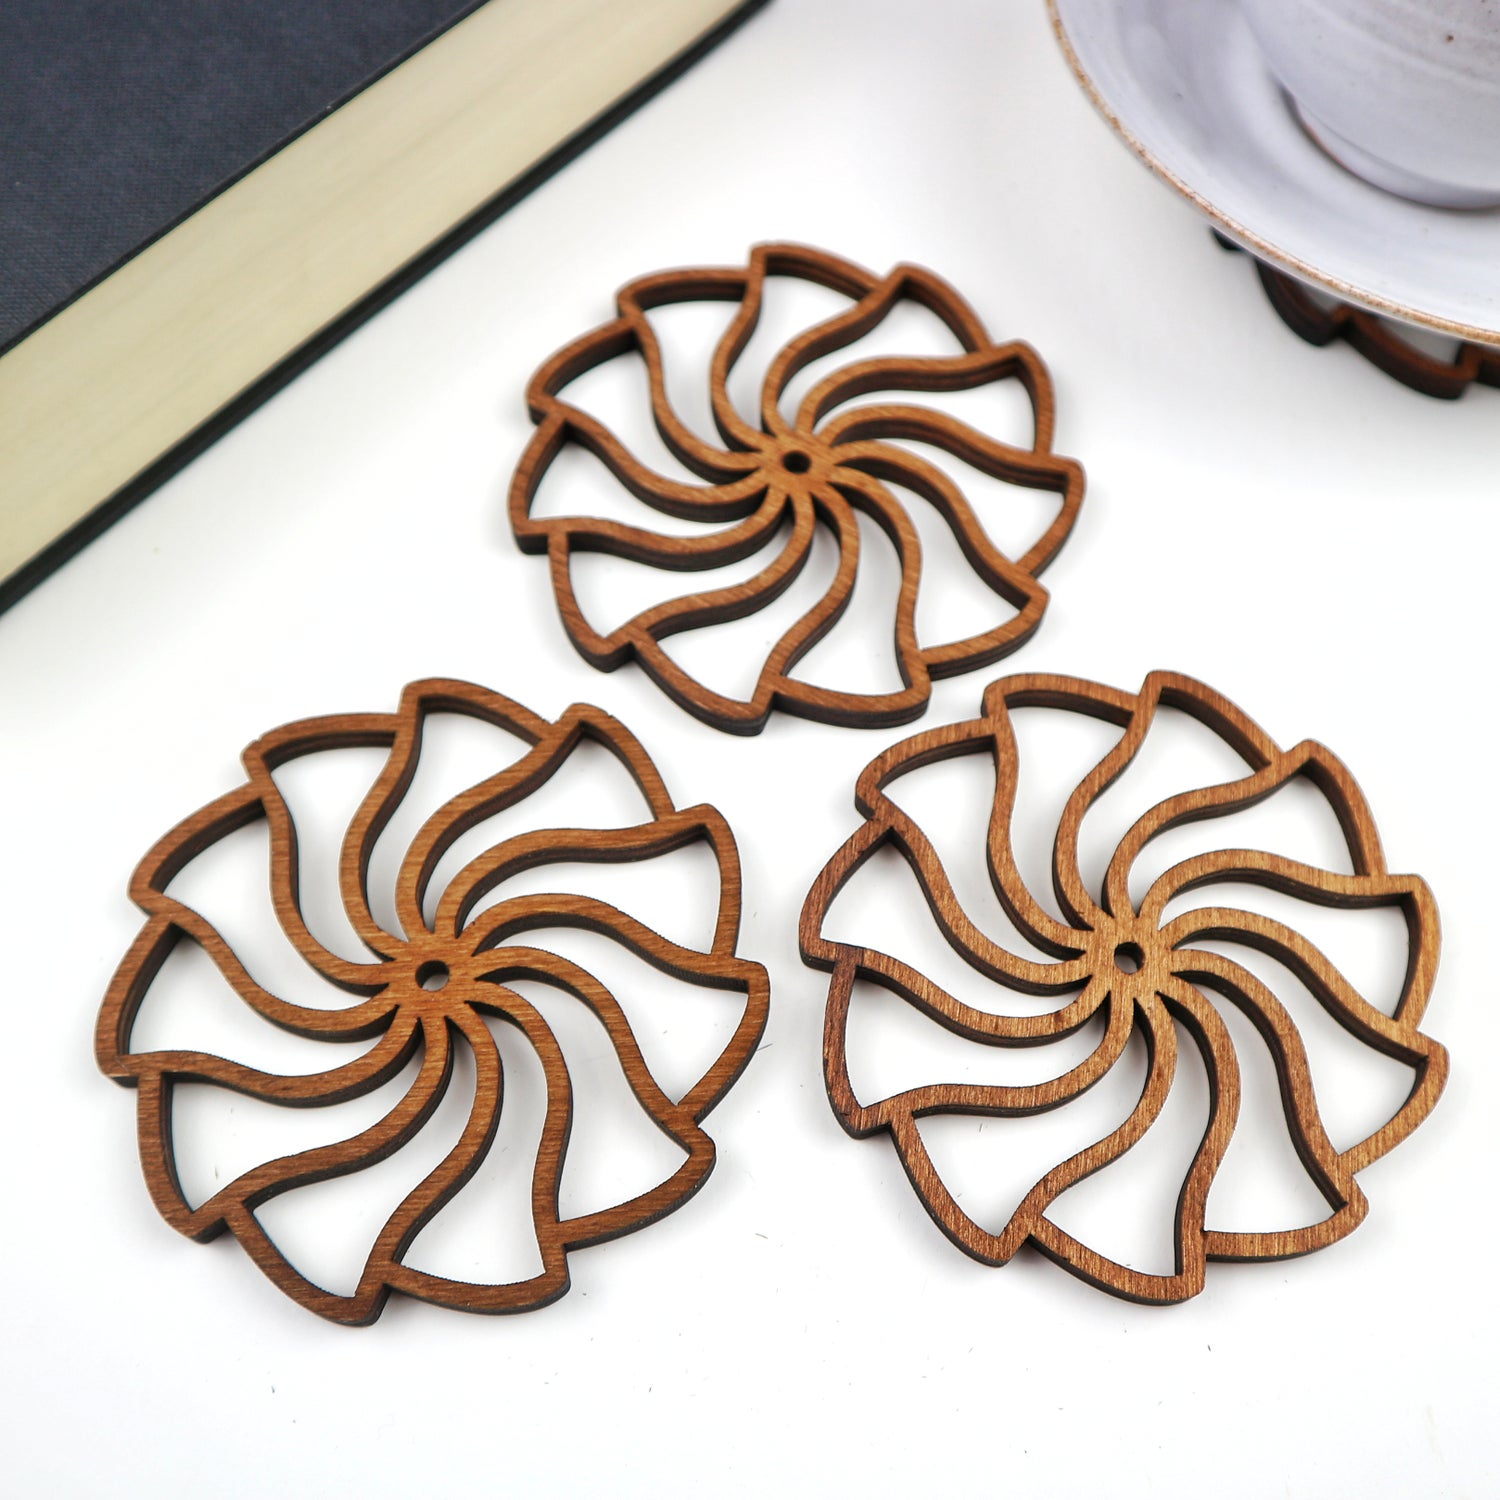 Image of Spiral Wave Drinks Coasters - Boxed Set of 4